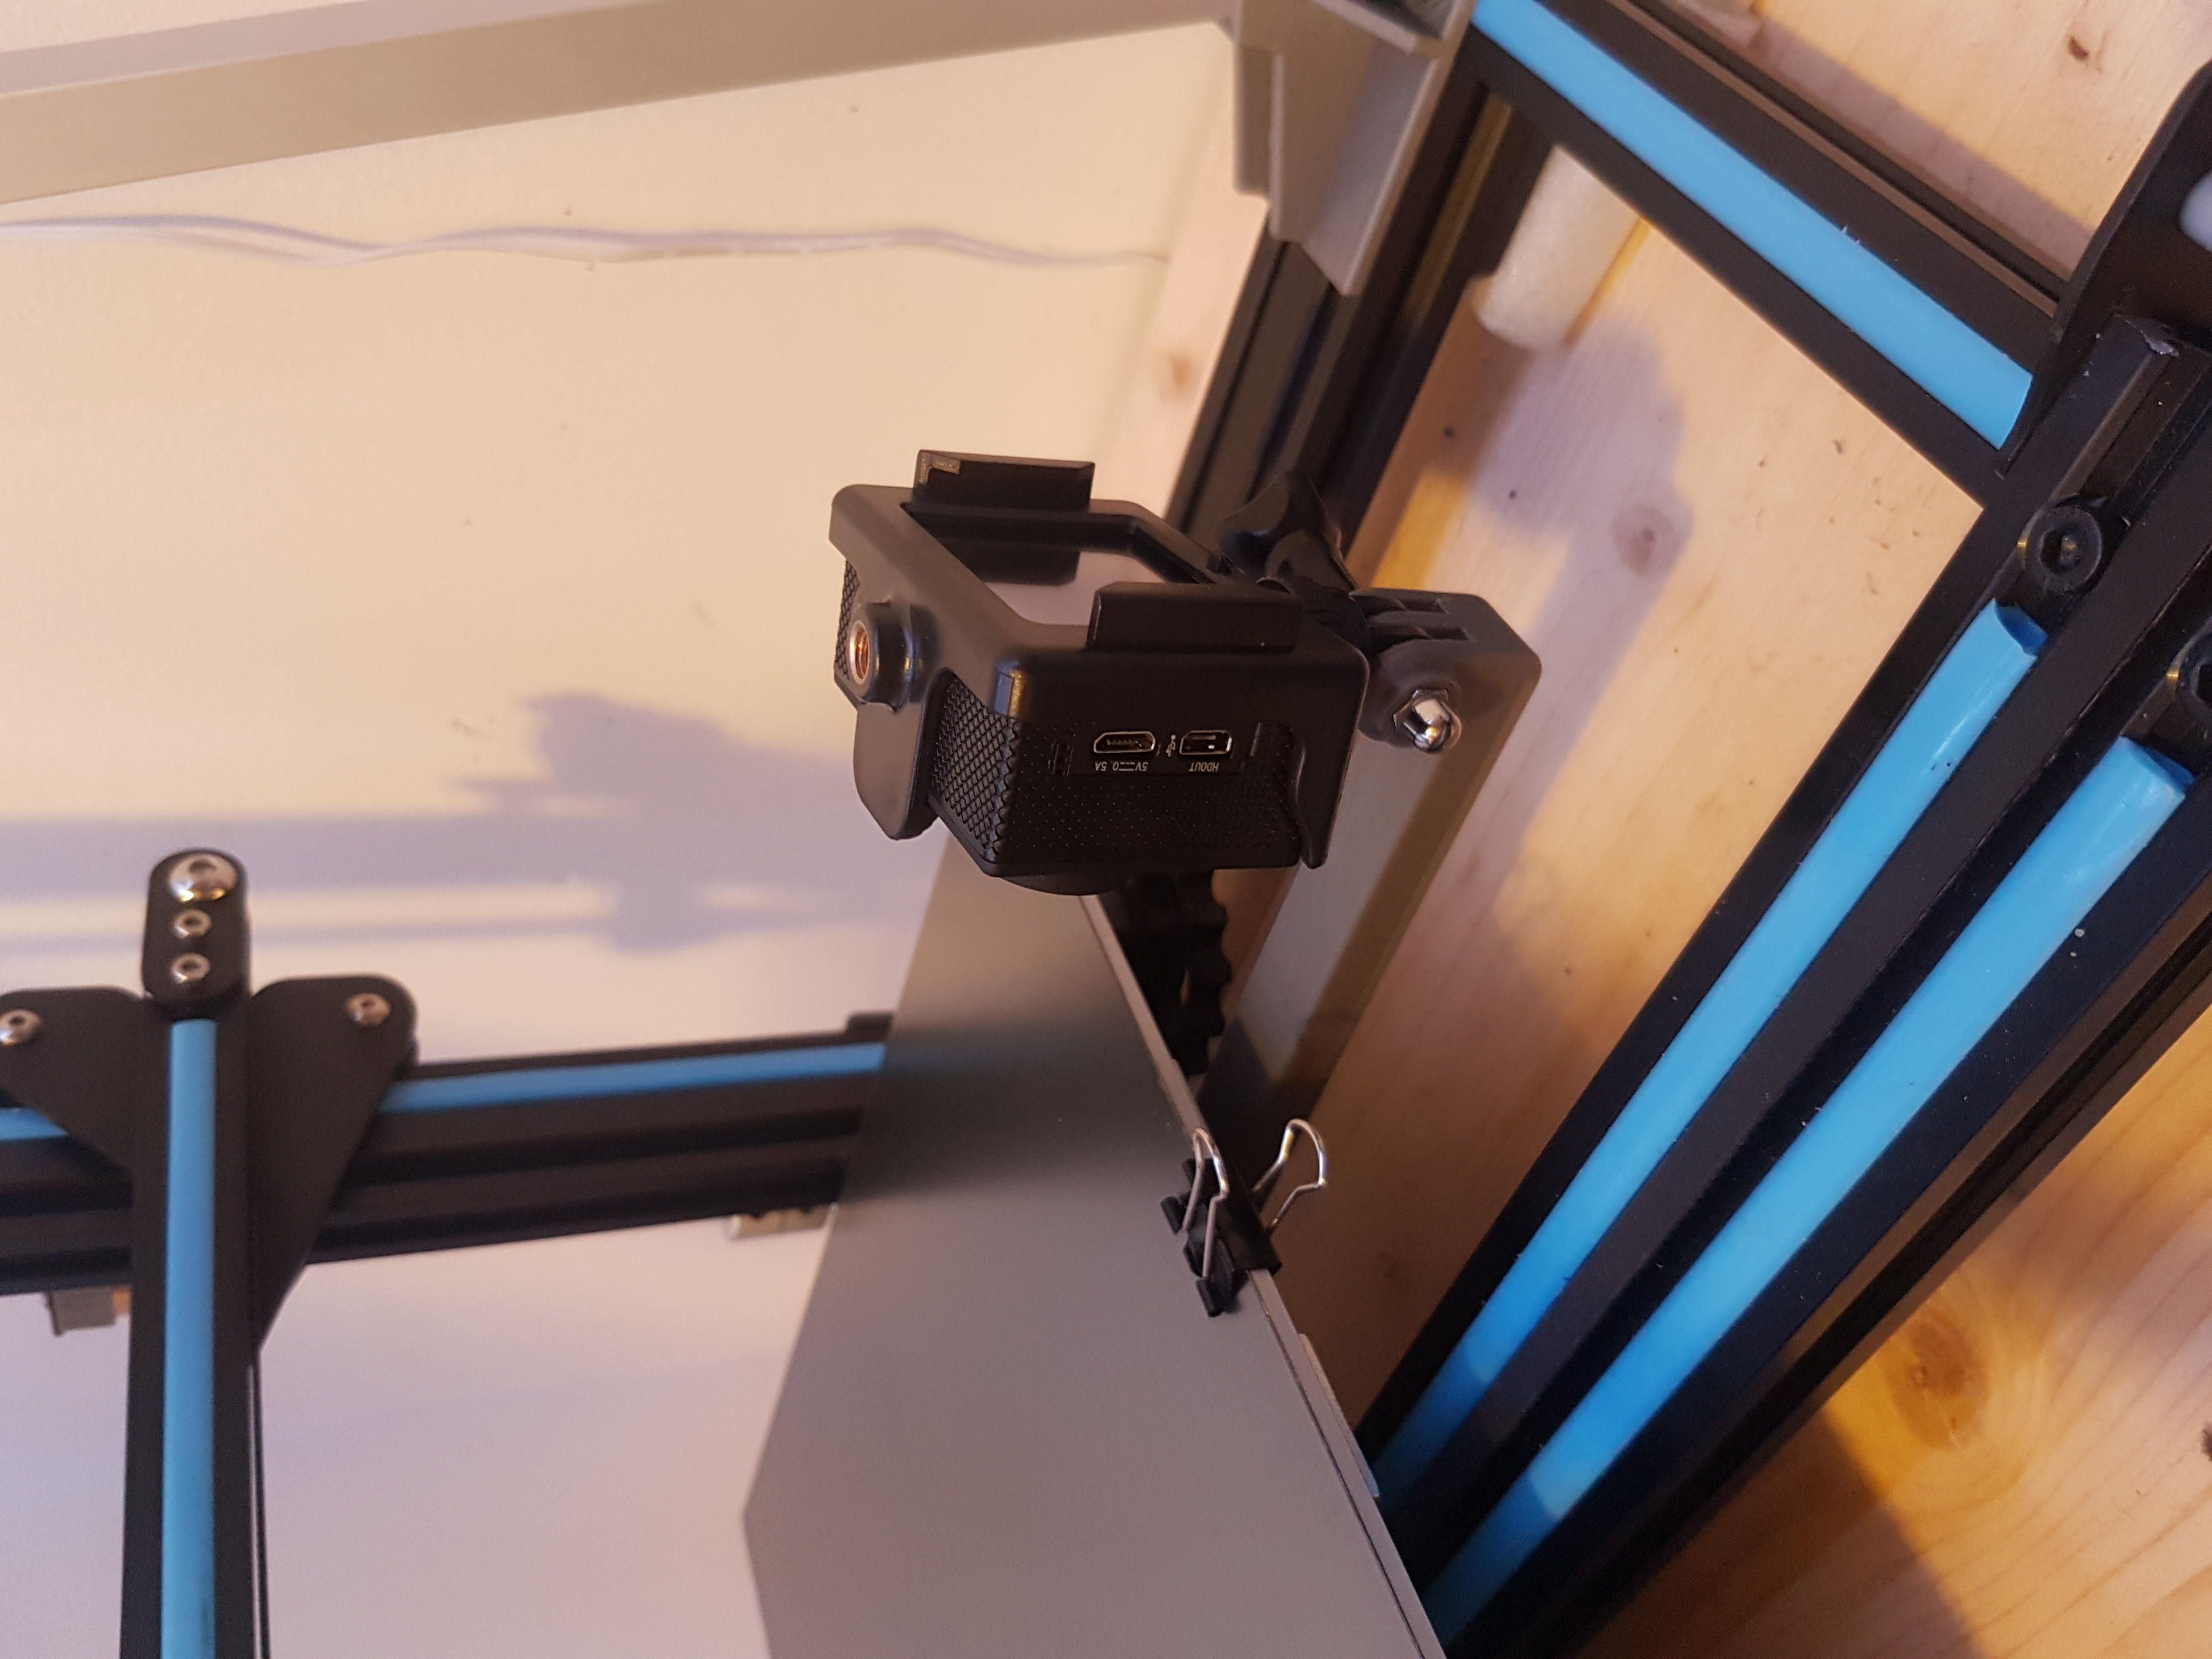 20190613_171551.jpg Download free STL file cr10 and i3 mega bed frame action cam mount - still bed timelapse • 3D print object, samster_3d